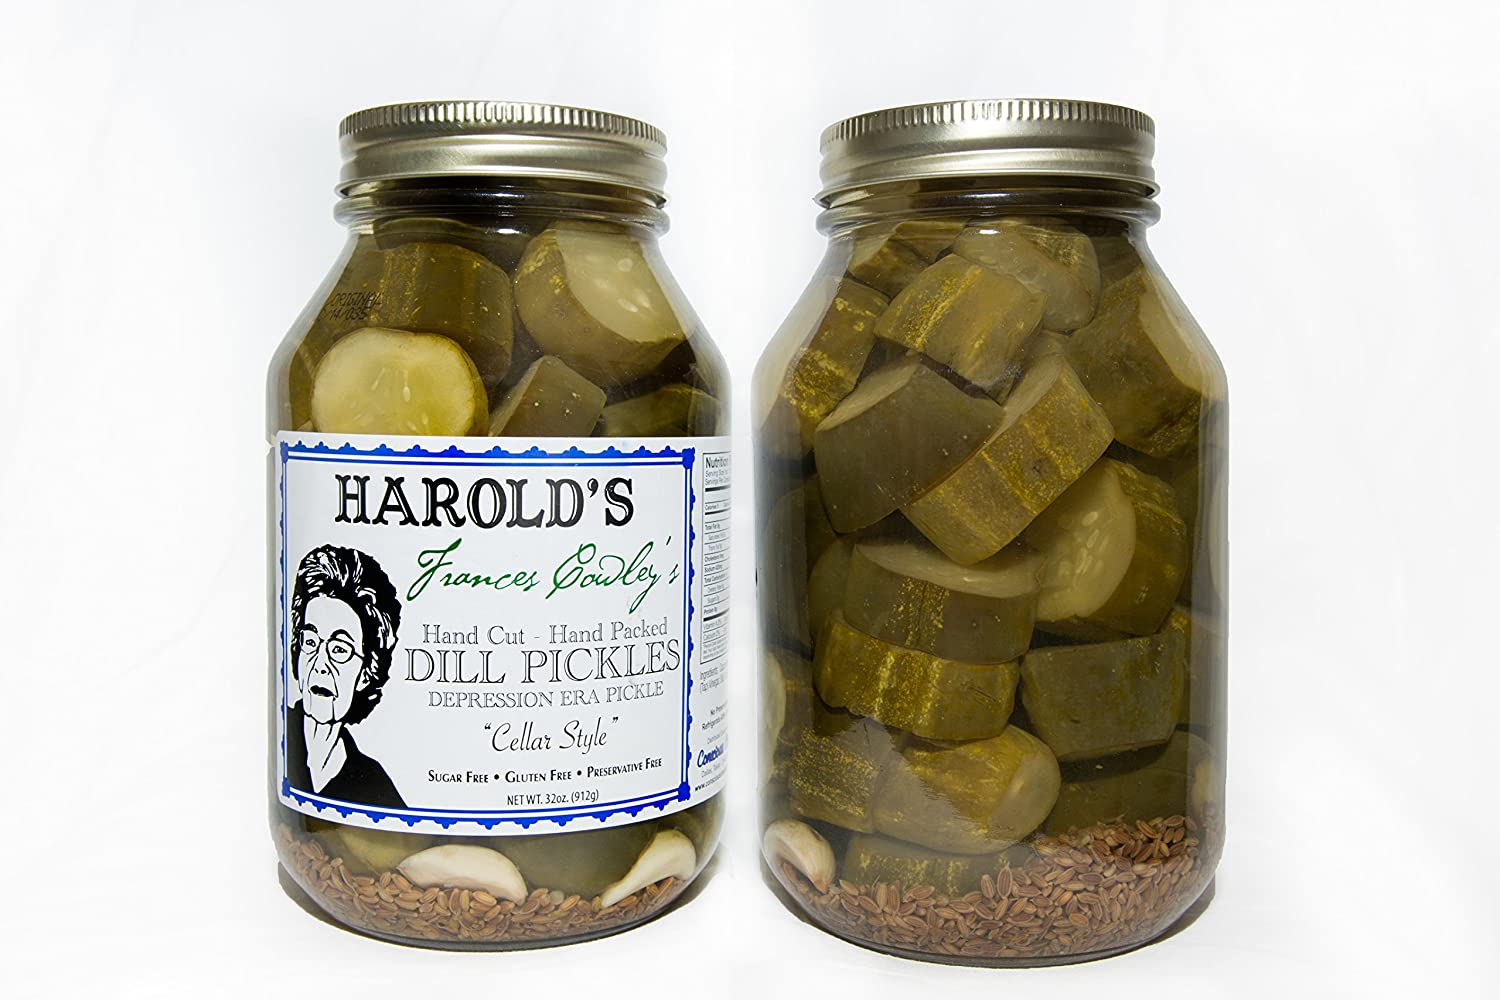 Gourmet Dill Pickles